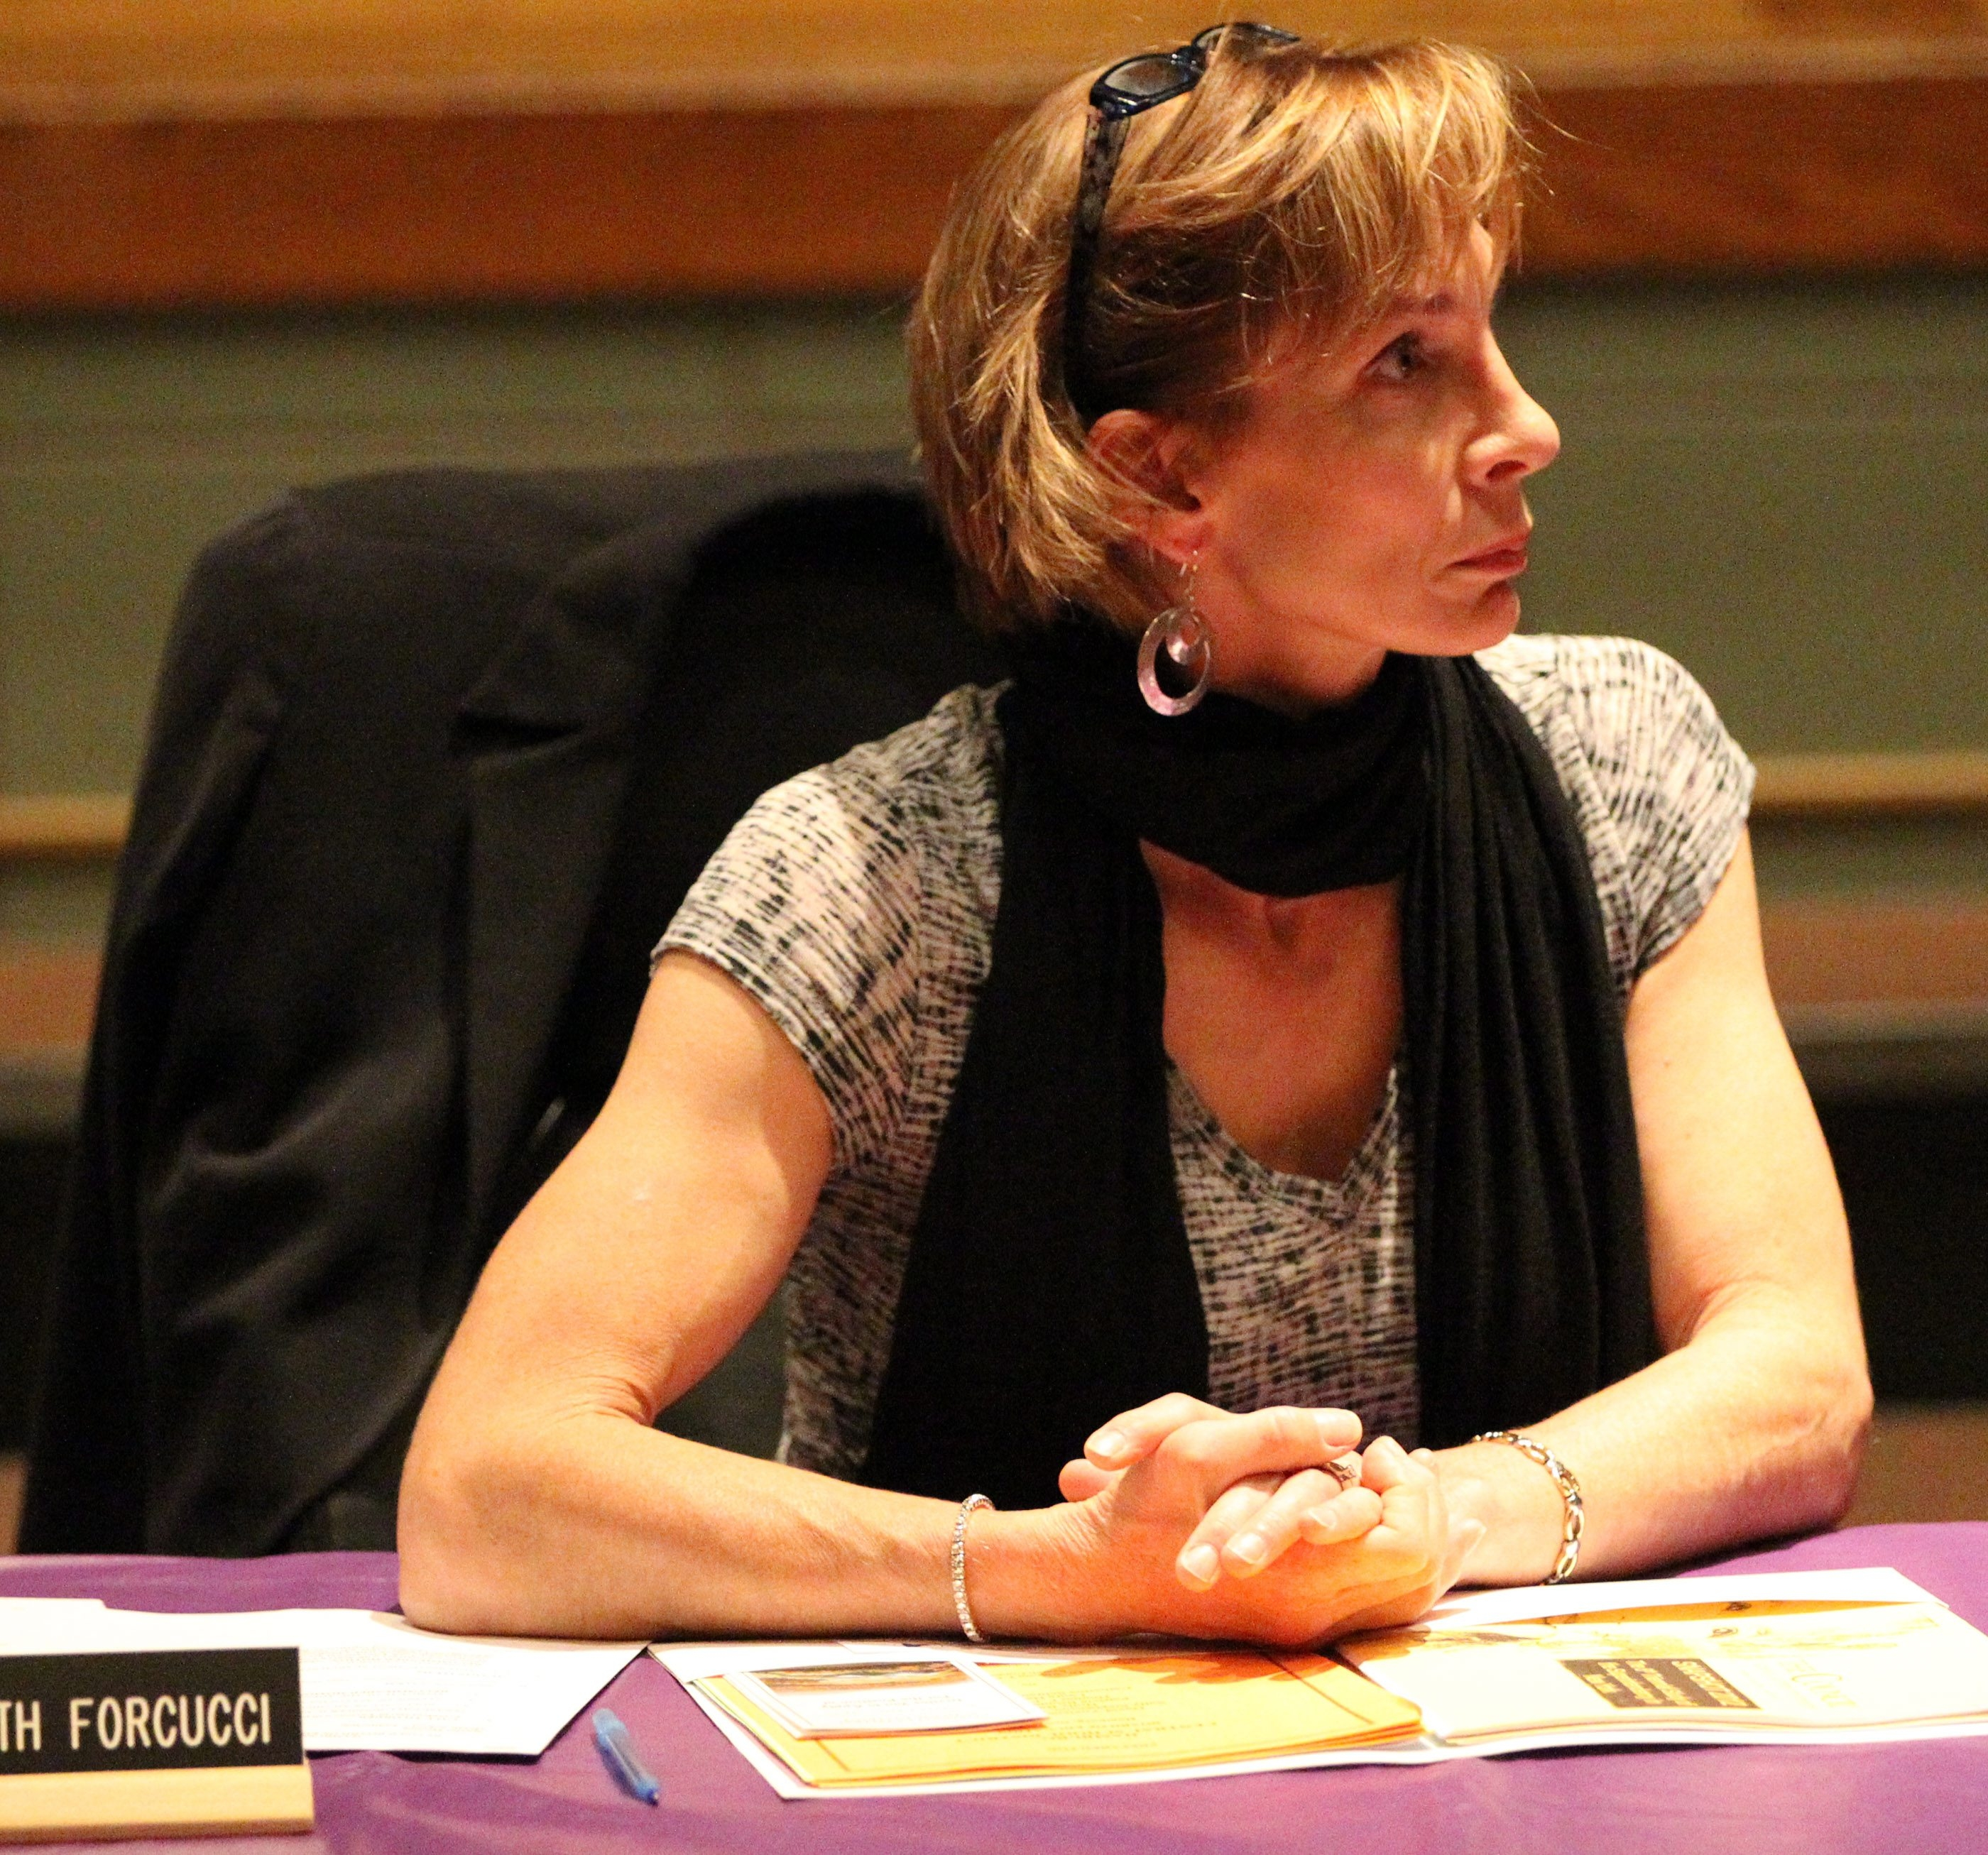 Catherine Schrauth Forcucci is accused of berating and criticizing Hamburg school officials and disrespecting the board president, violating board policy and the district's code of conduct. .  (James P. McCoy/ Buffalo News)